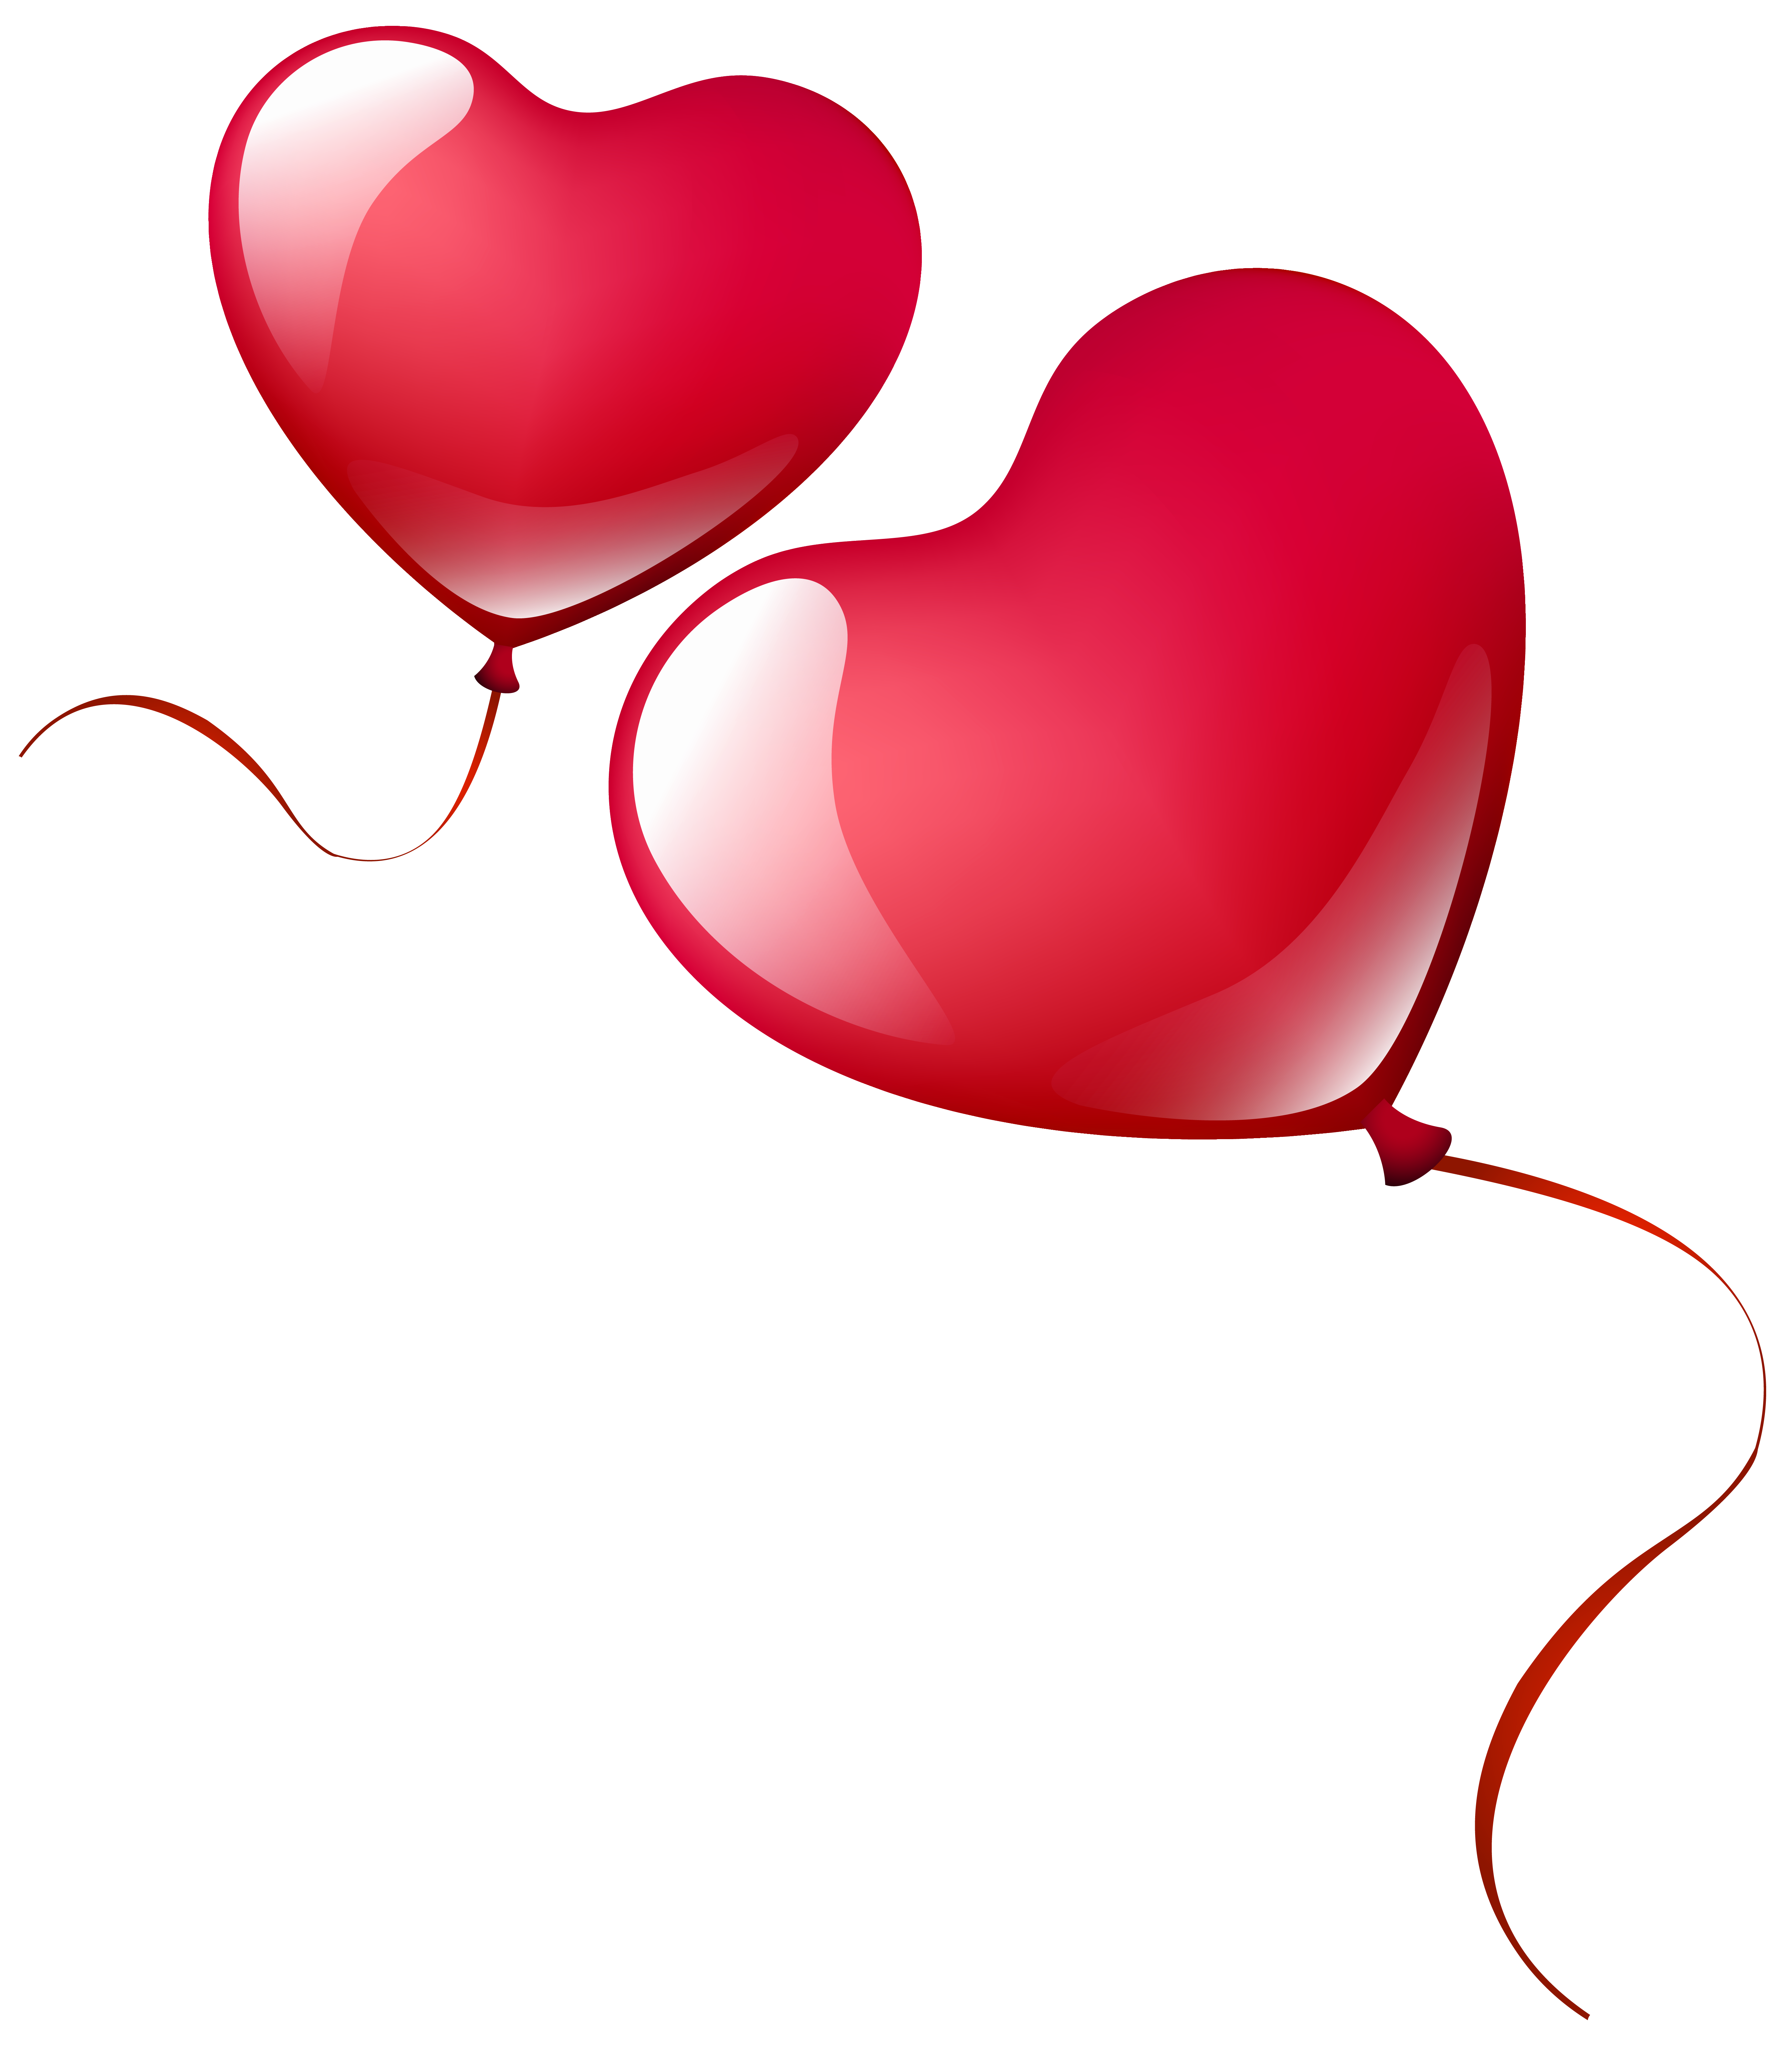 Heart balloons clipart clipart transparent Heart Balloons PNG Clipart Image | Gallery Yopriceville - High ... clipart transparent